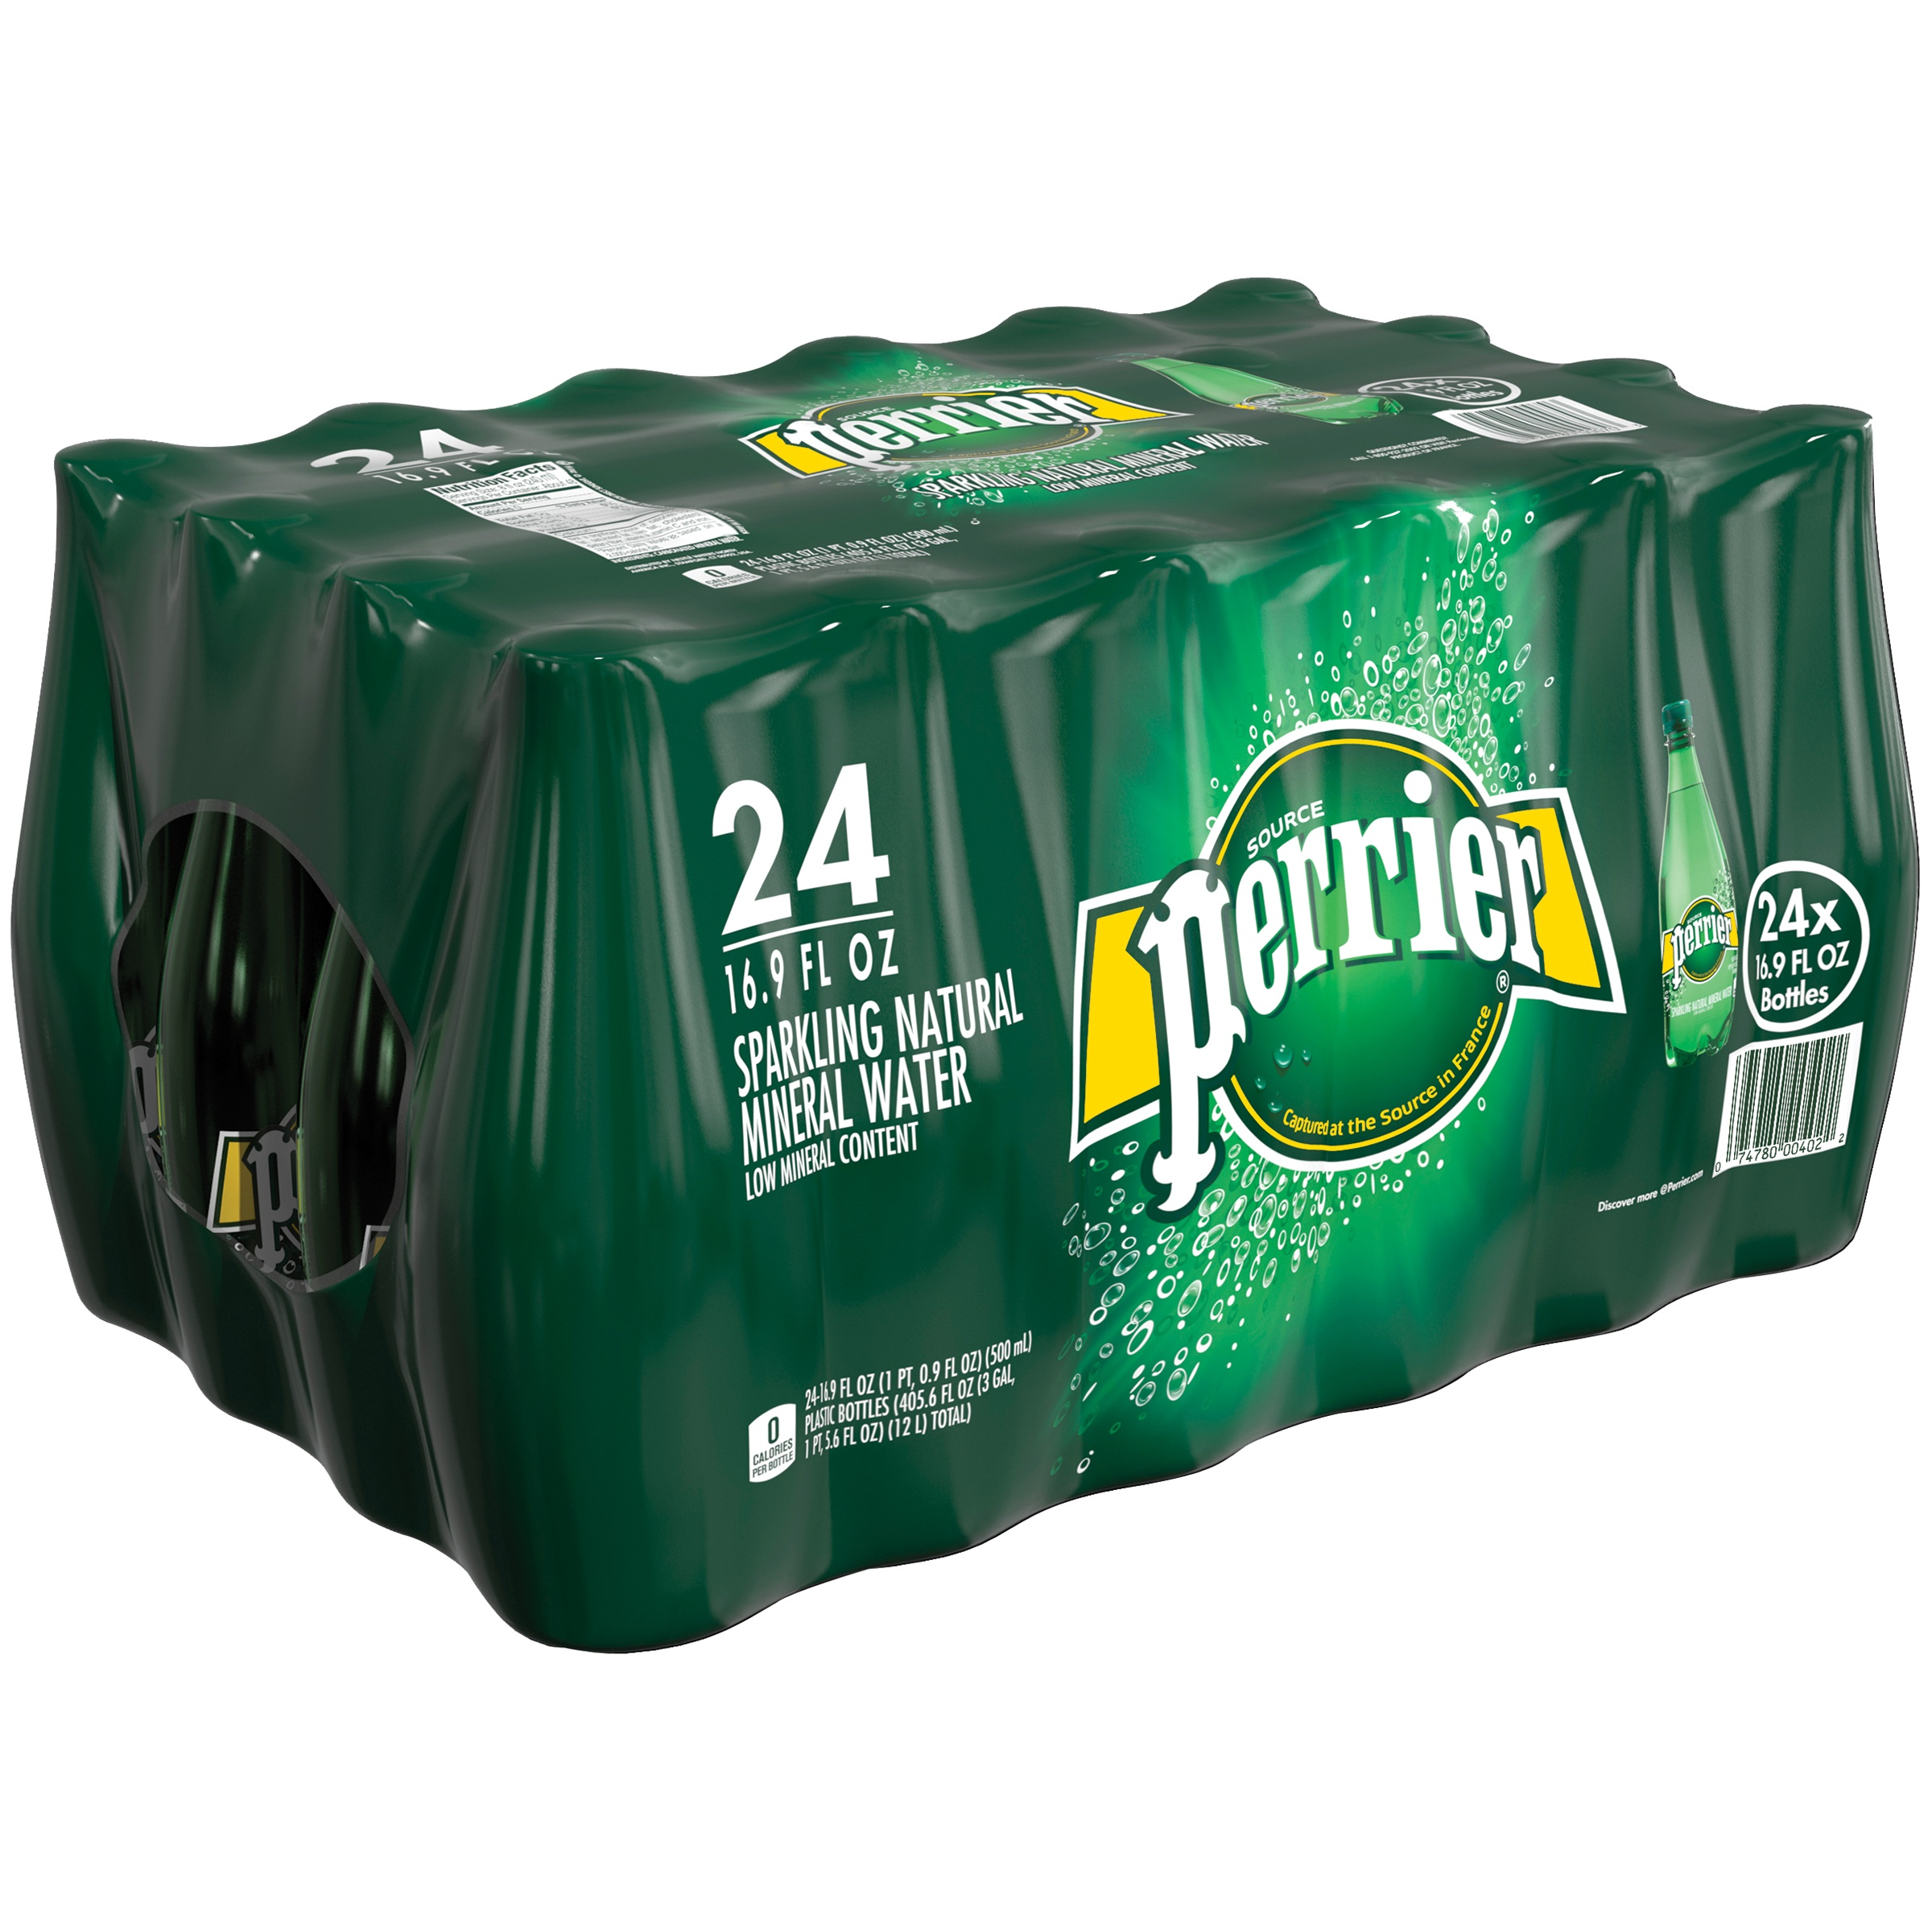 PERRIER Sparkling Natural Mineral <mark>Water</mark>, 16.9-ounce plastic bottles (Pack of 24)